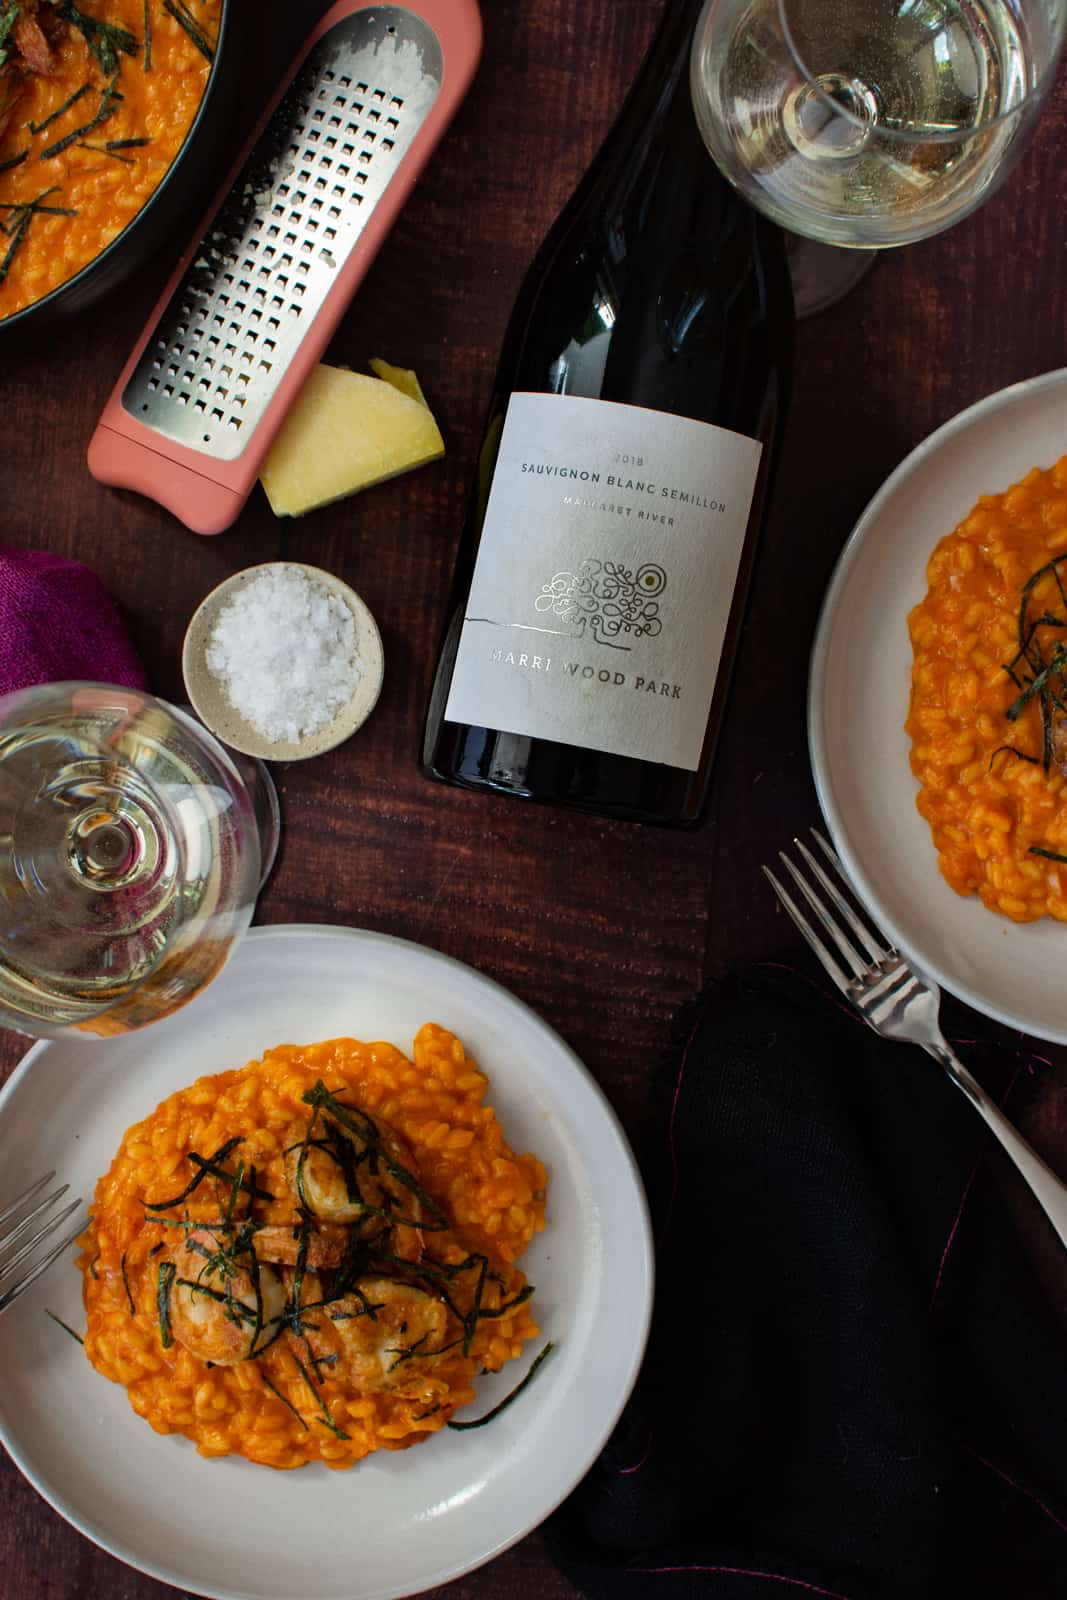 prawn risotto in a white bowl, parmesan, salt and a bottle of marri wood wine on wooden table